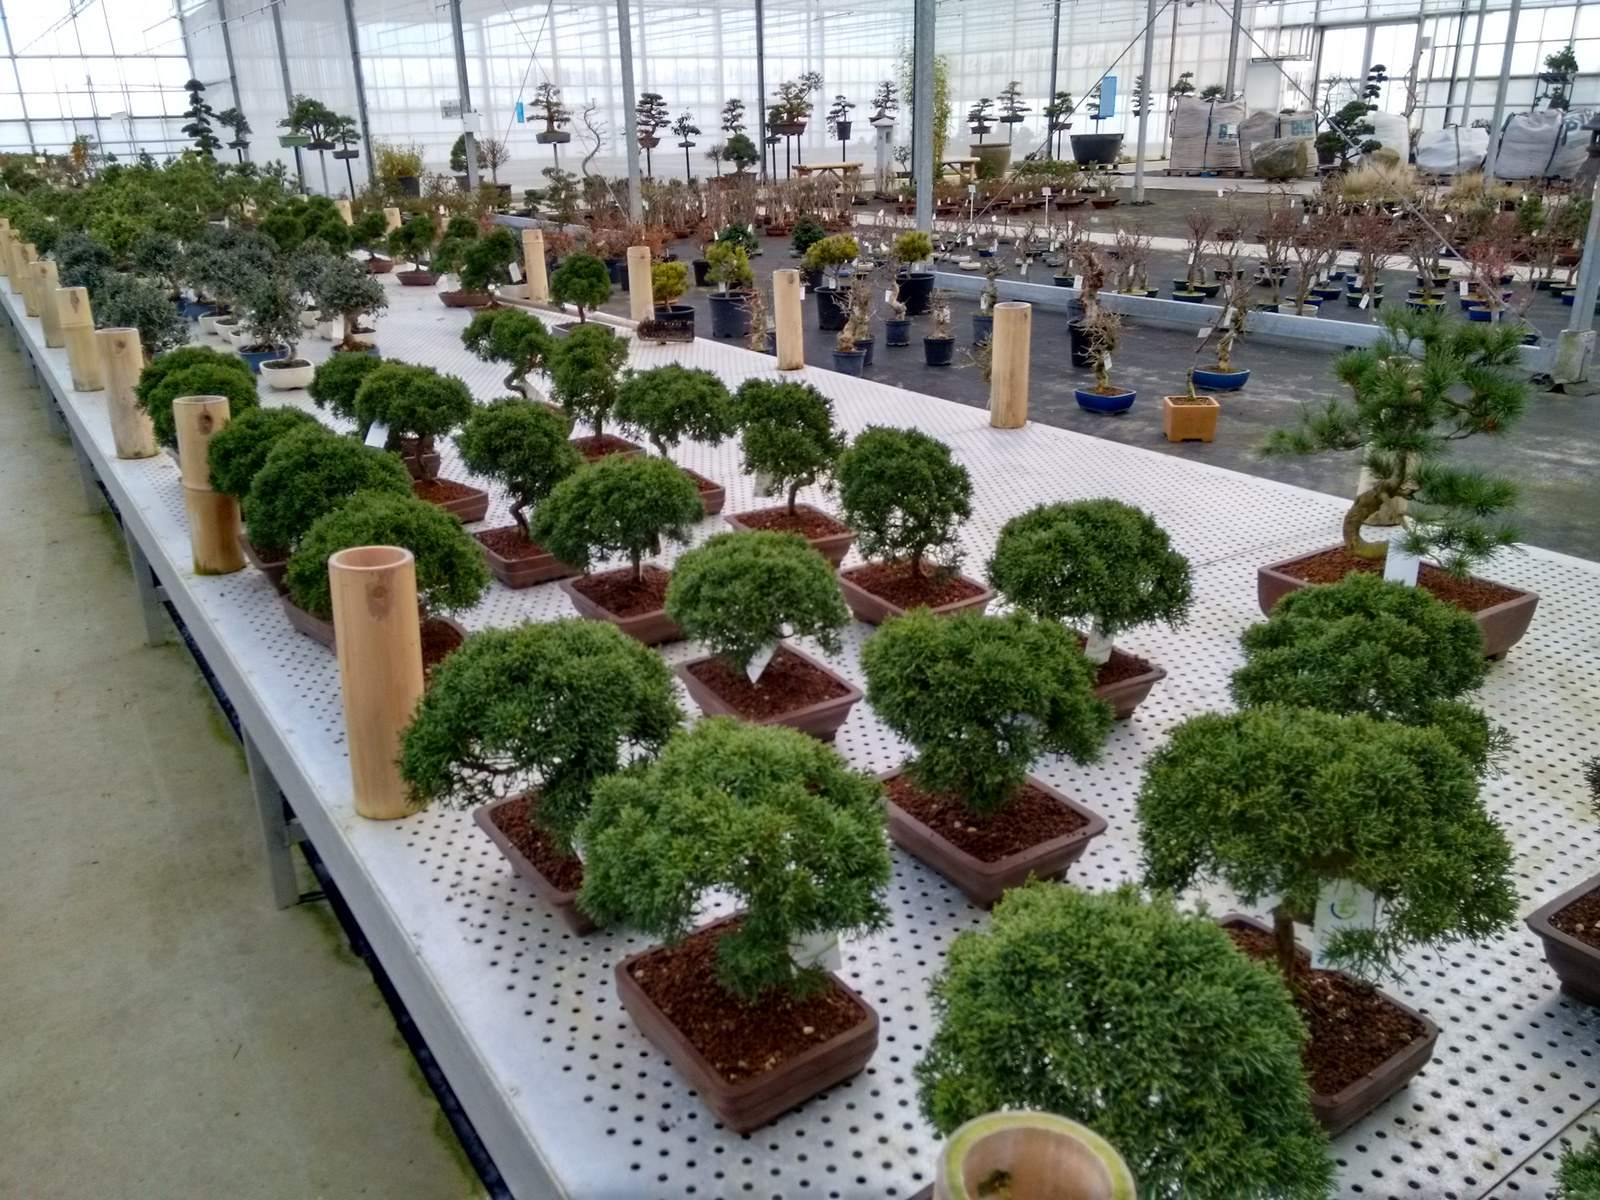 bonsai lodder8 Bonsai Lodder   One of the Largest Bonsai Store in the World, Netherlands